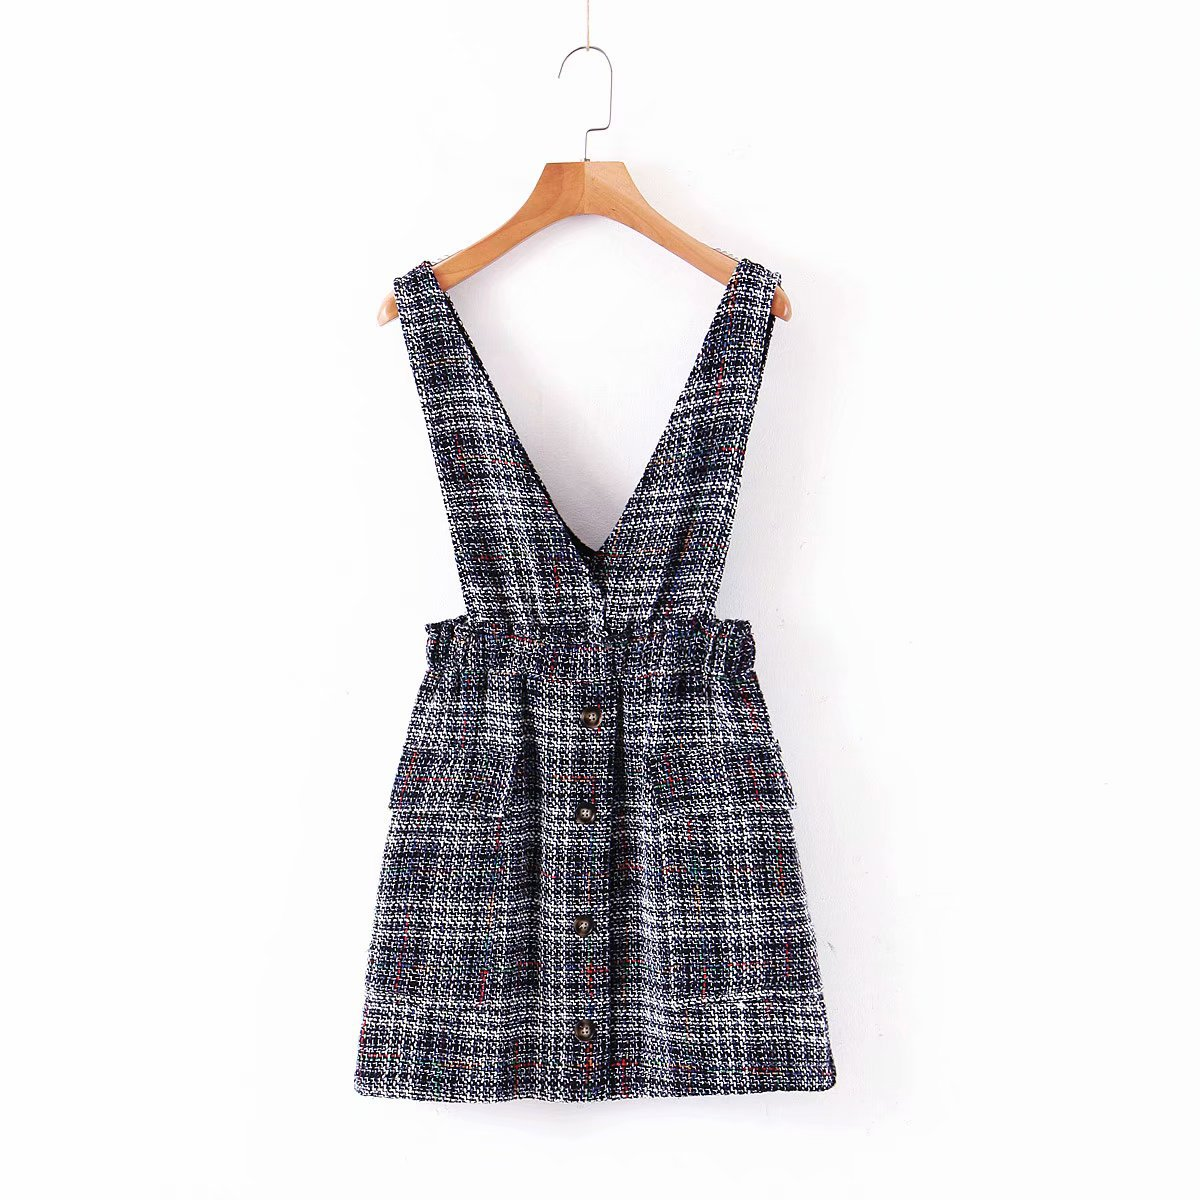 M1615-Western Style WOMEN'S Dress 2019 Summer New Style Graceful Tweed Plaid Suspender Strap Dress